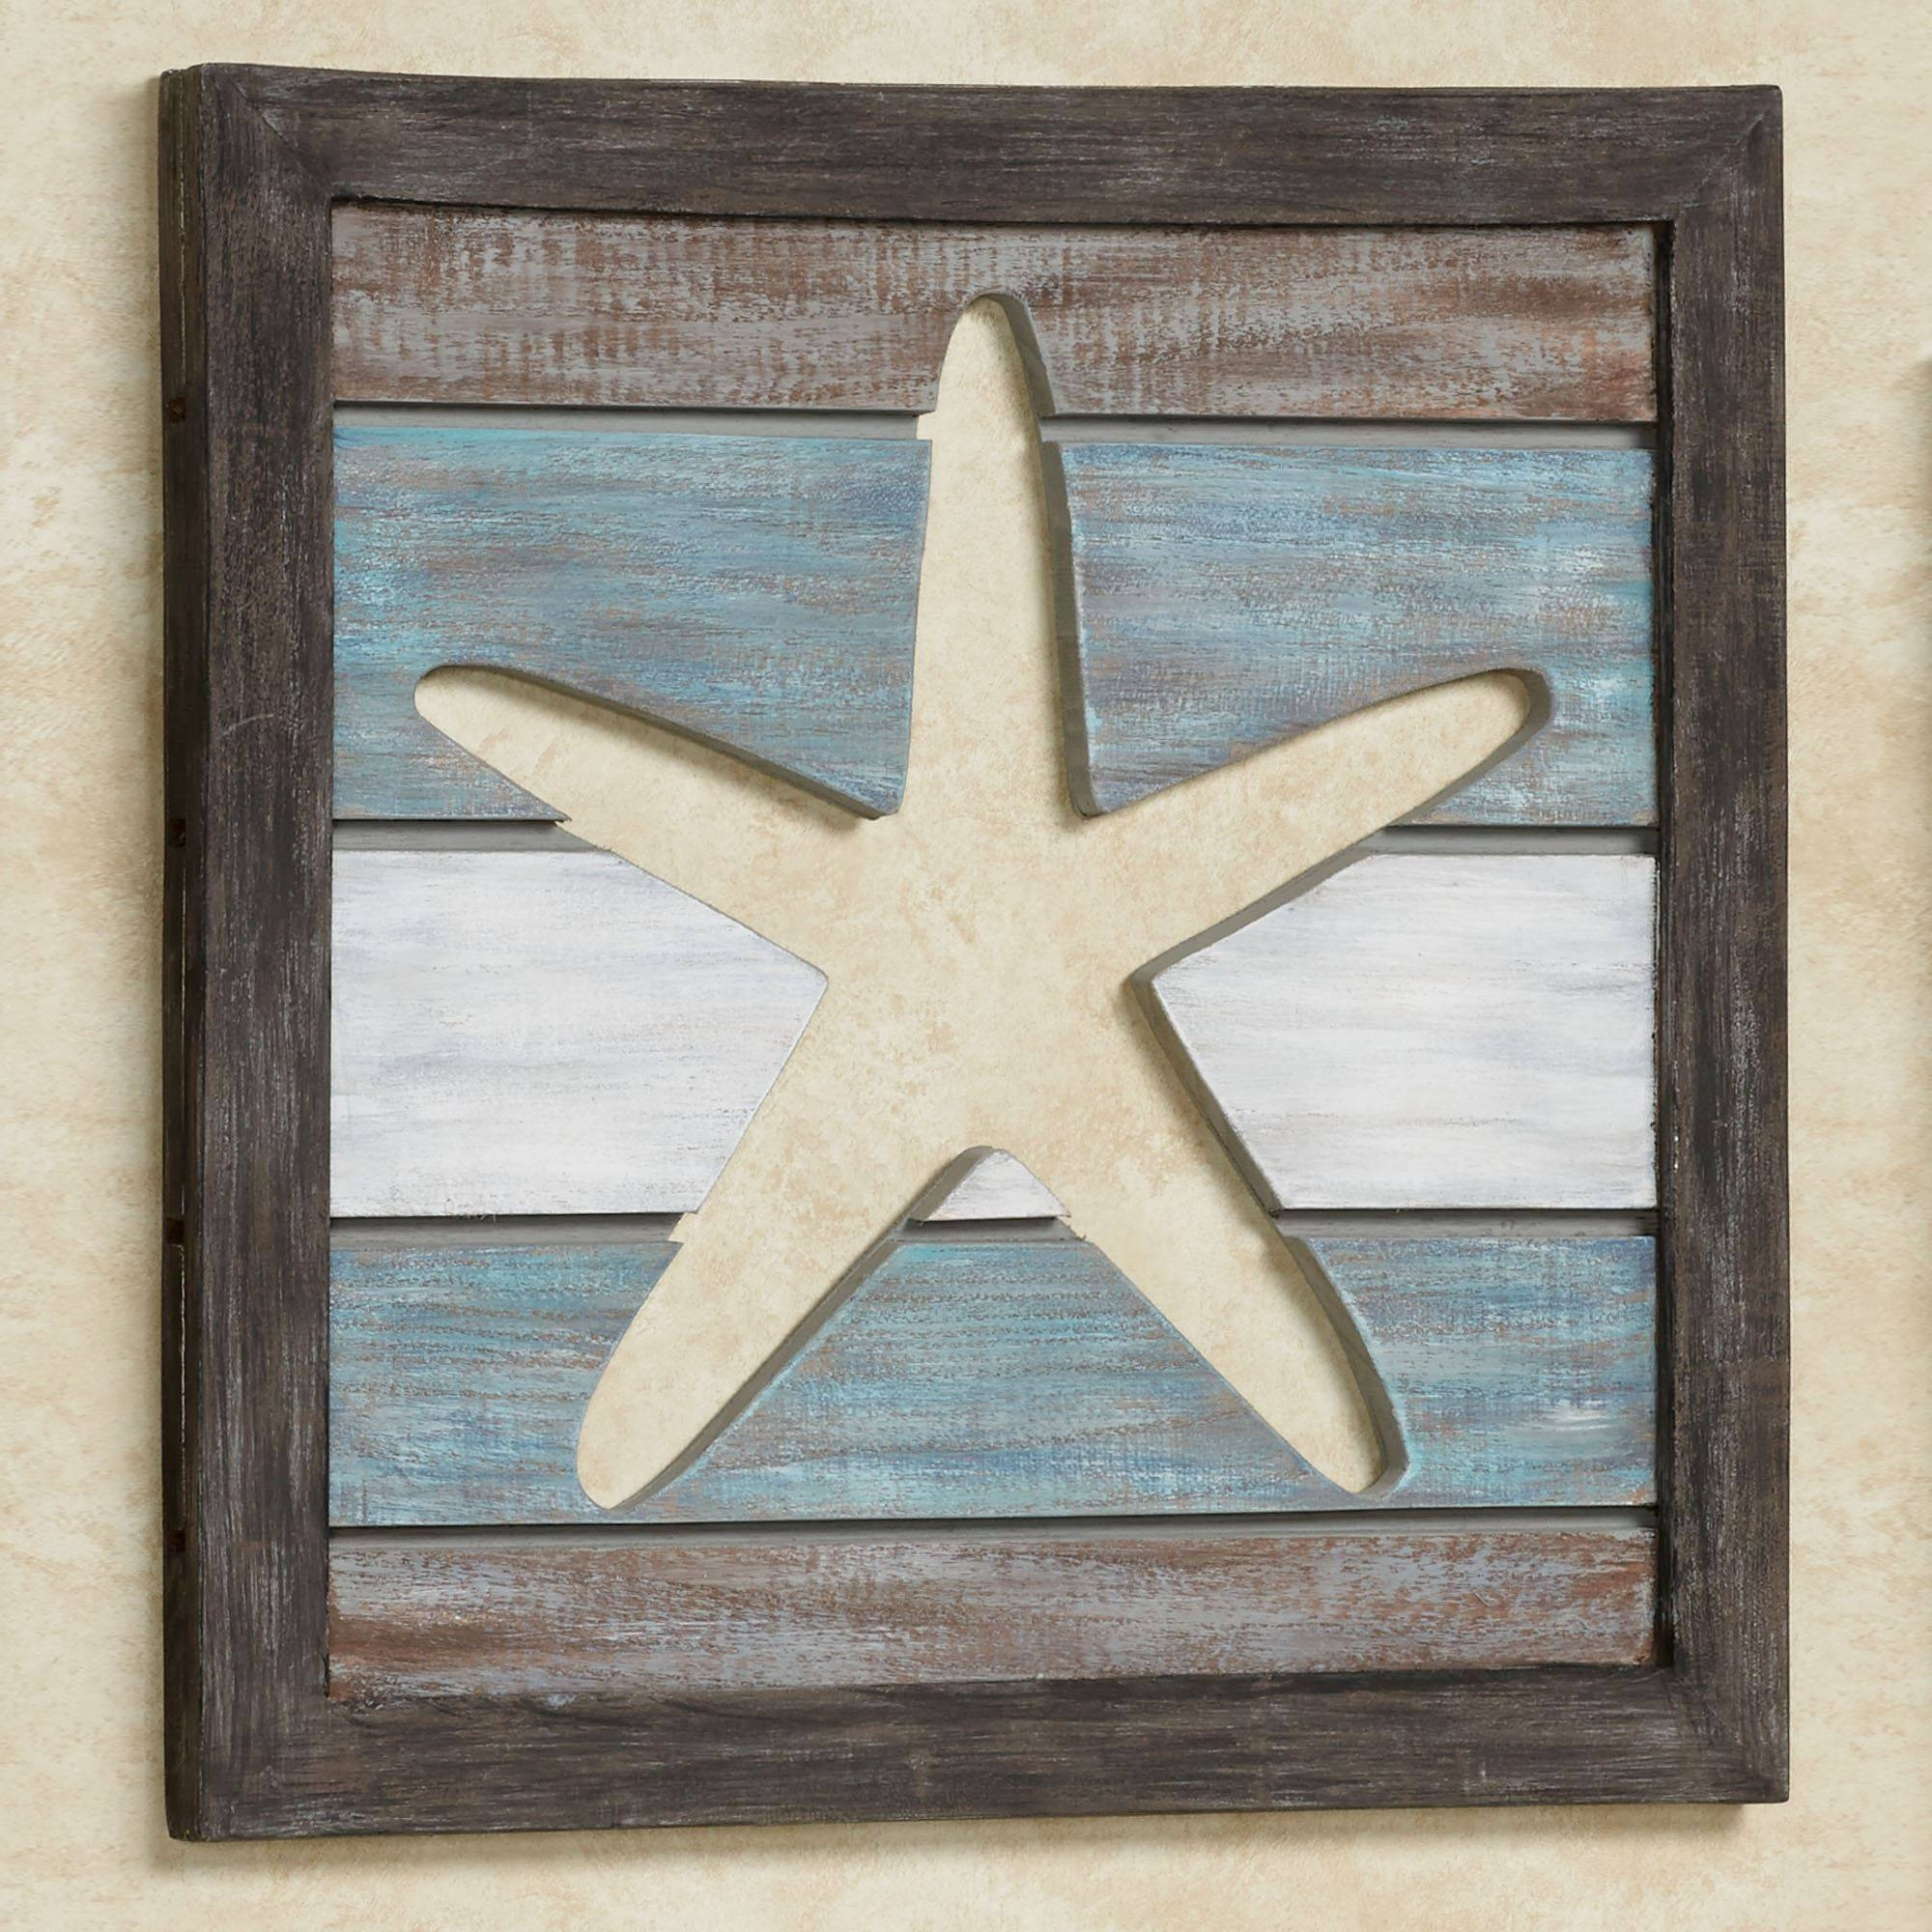 Sealife Cutout Slat Indoor Outdoor Coastal Wall Art Within Best And Newest Outdoor Coastal Wall Art (View 19 of 20)